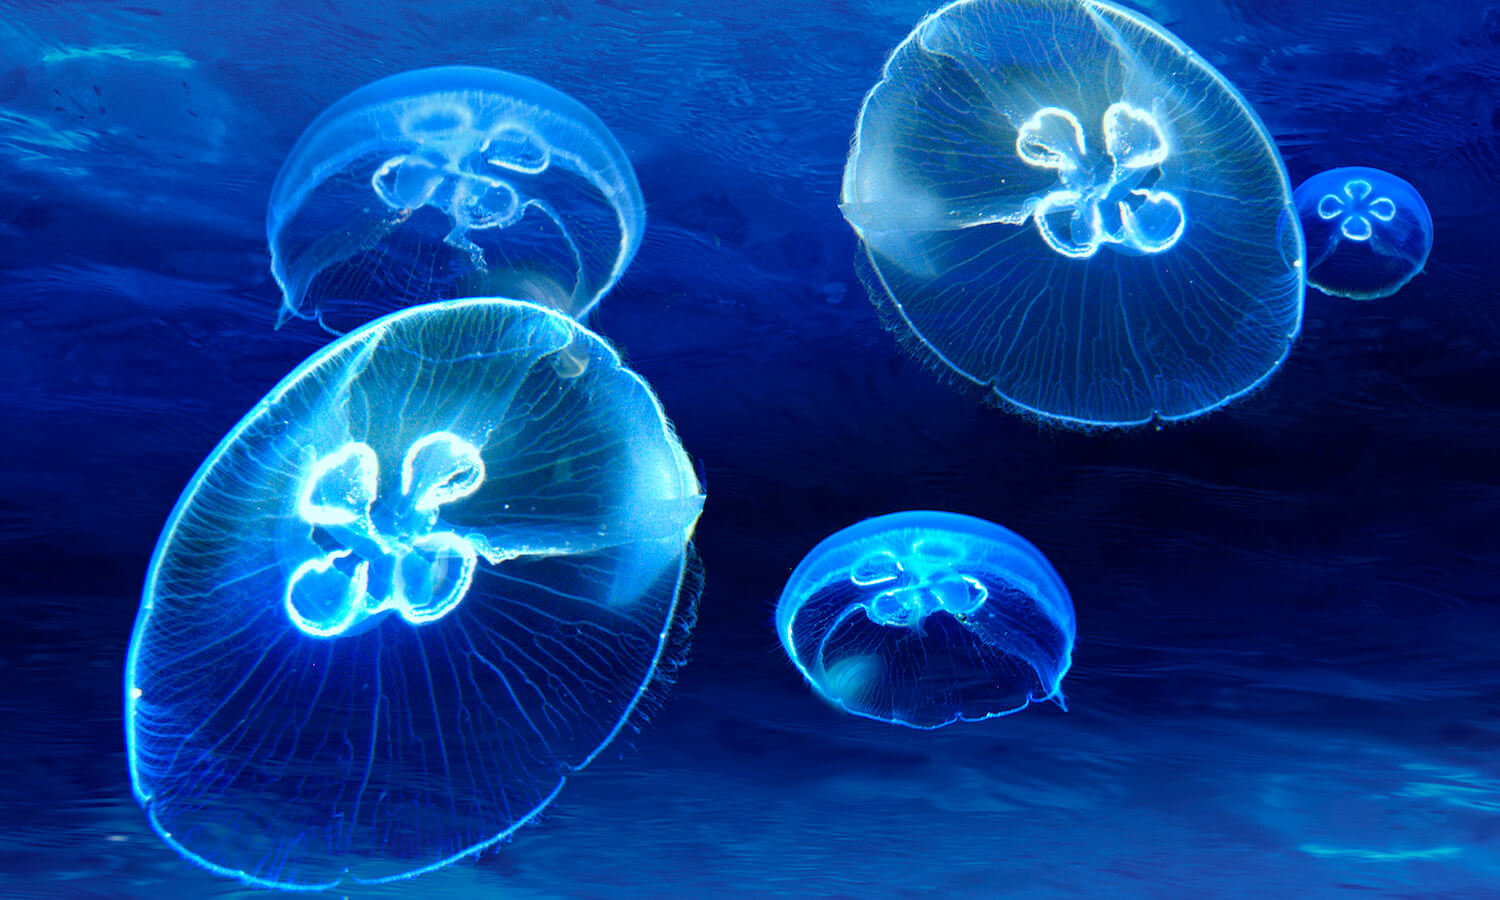 Jellyfish glow with self-luminous light underwater below the ocean surface